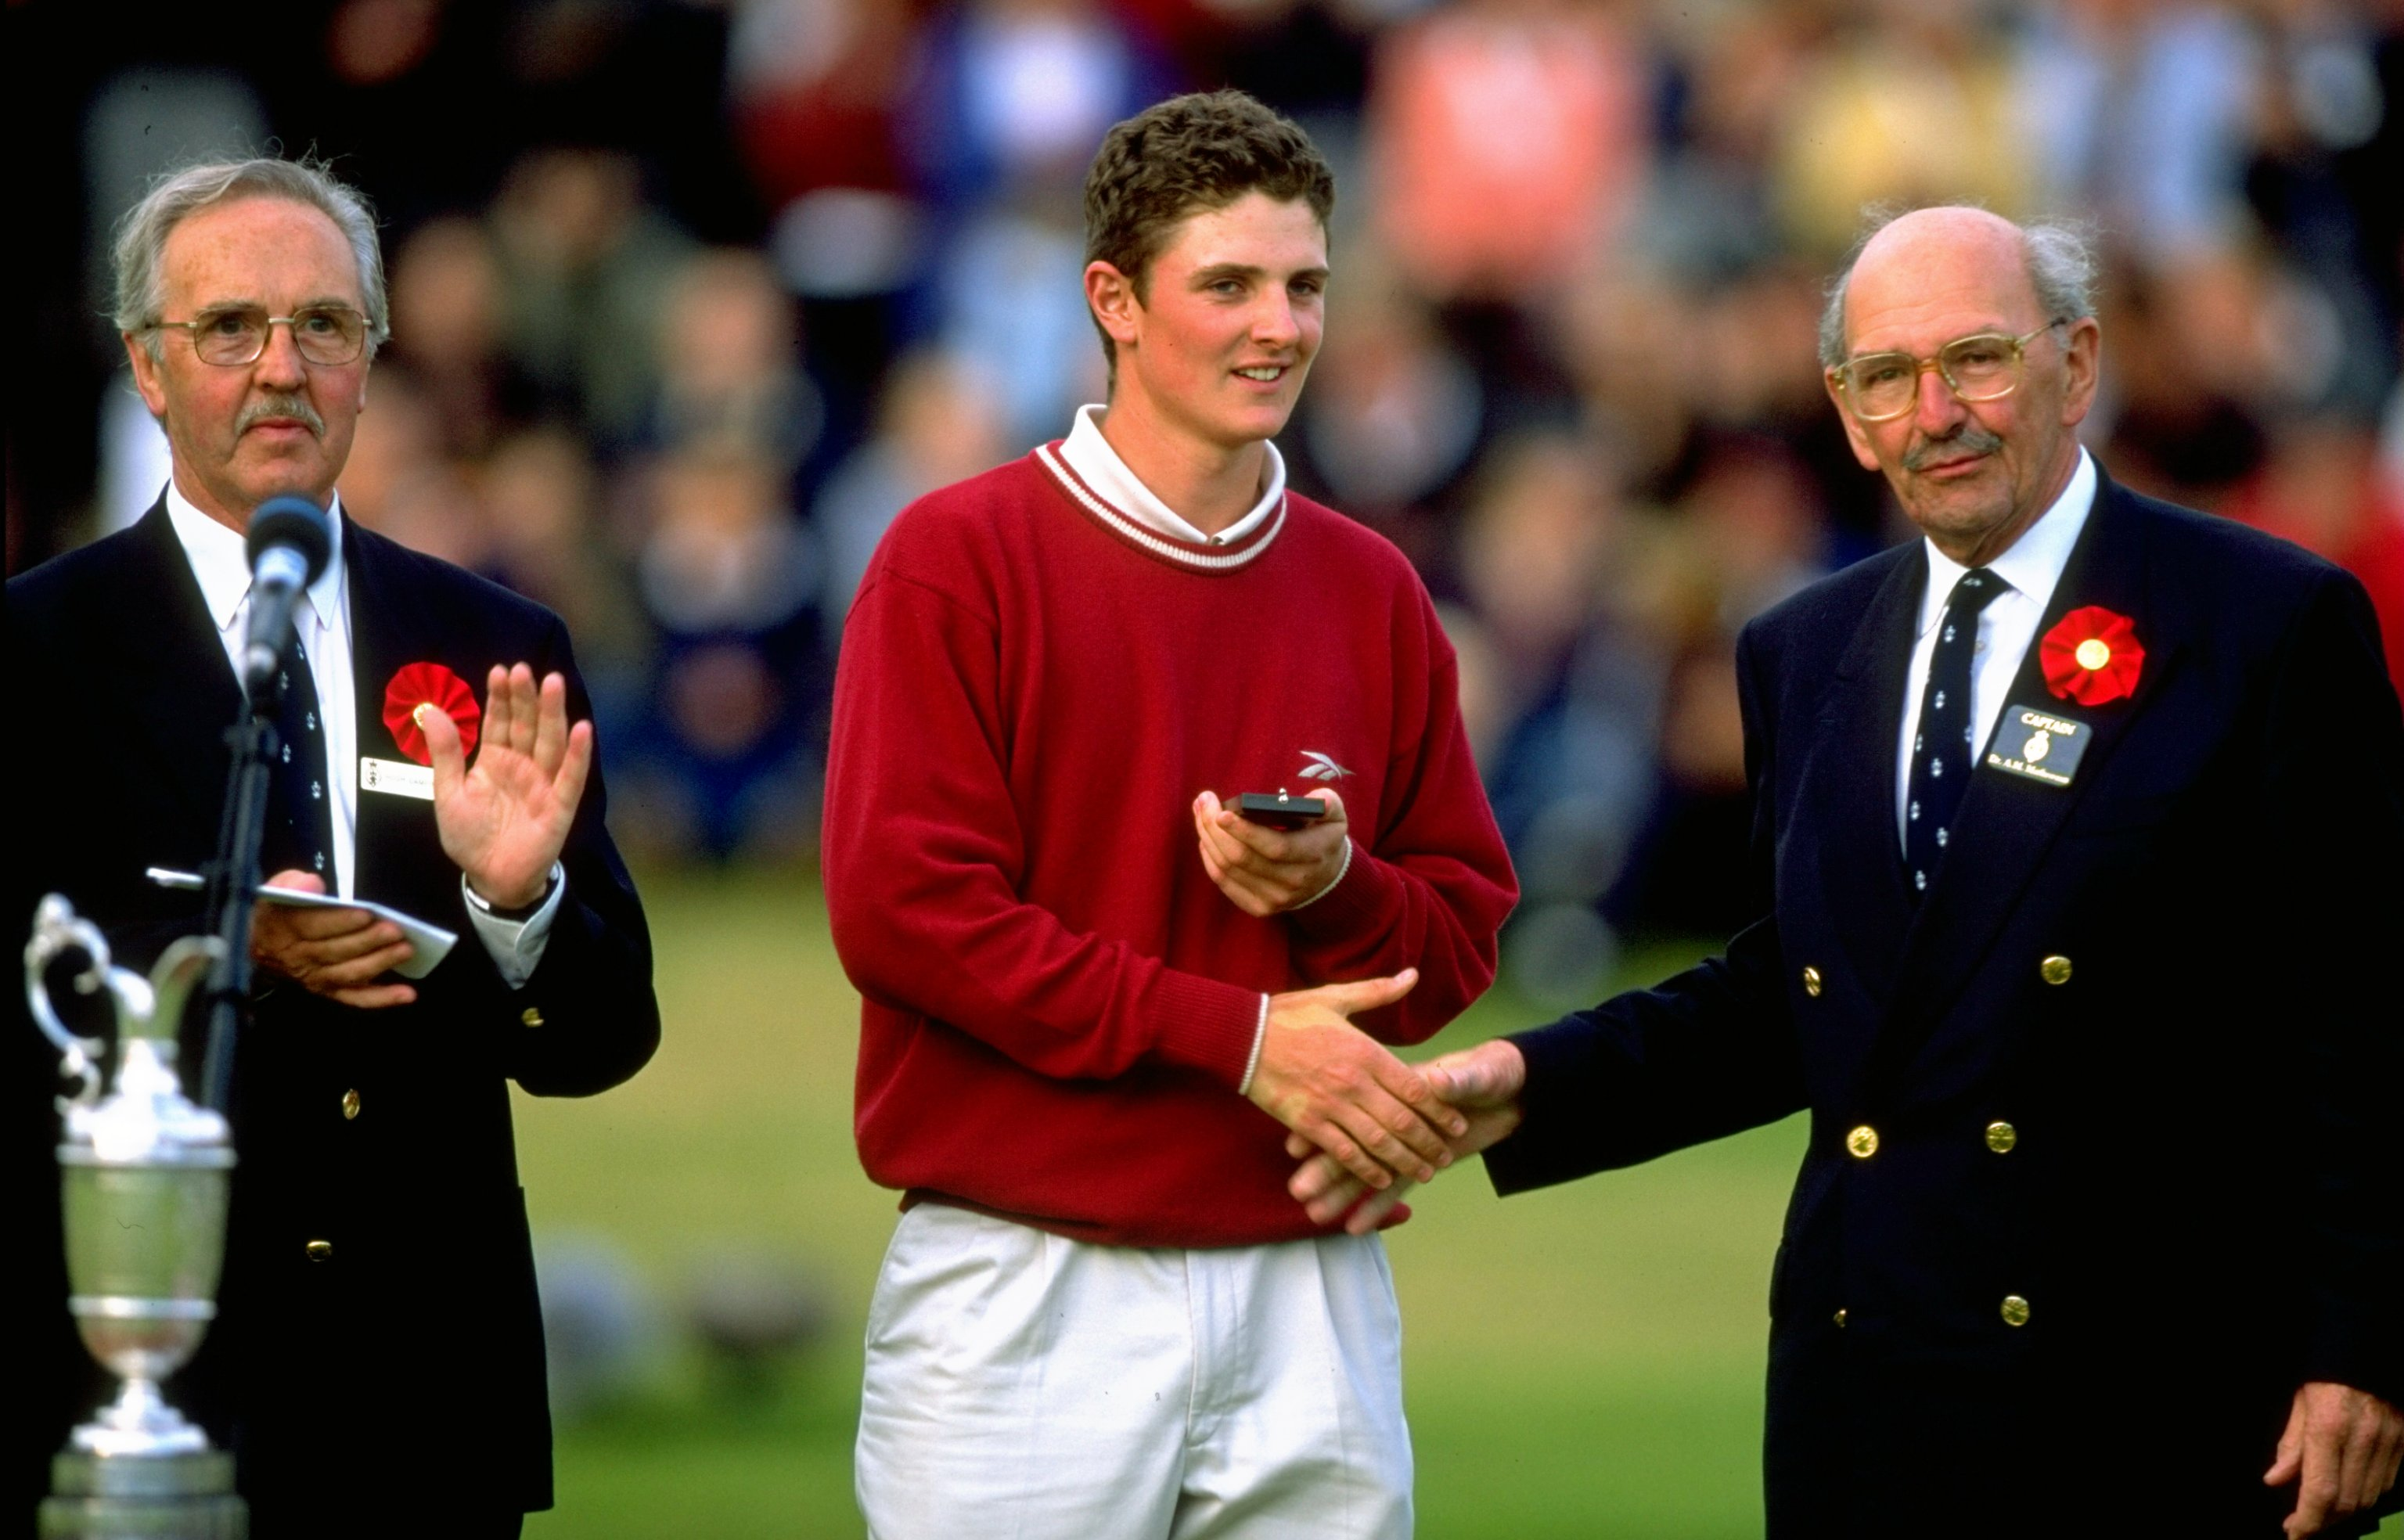 Seventeen-year-old amateur Justin Rose holed his third shot from the fairway at Royal Birkdale in 1998 to finish fourth. The next day he turned professional and proceeded to miss 21 consecutive cuts. He finally broke through at a major when he won the 2013 U.S. Open at Merion.